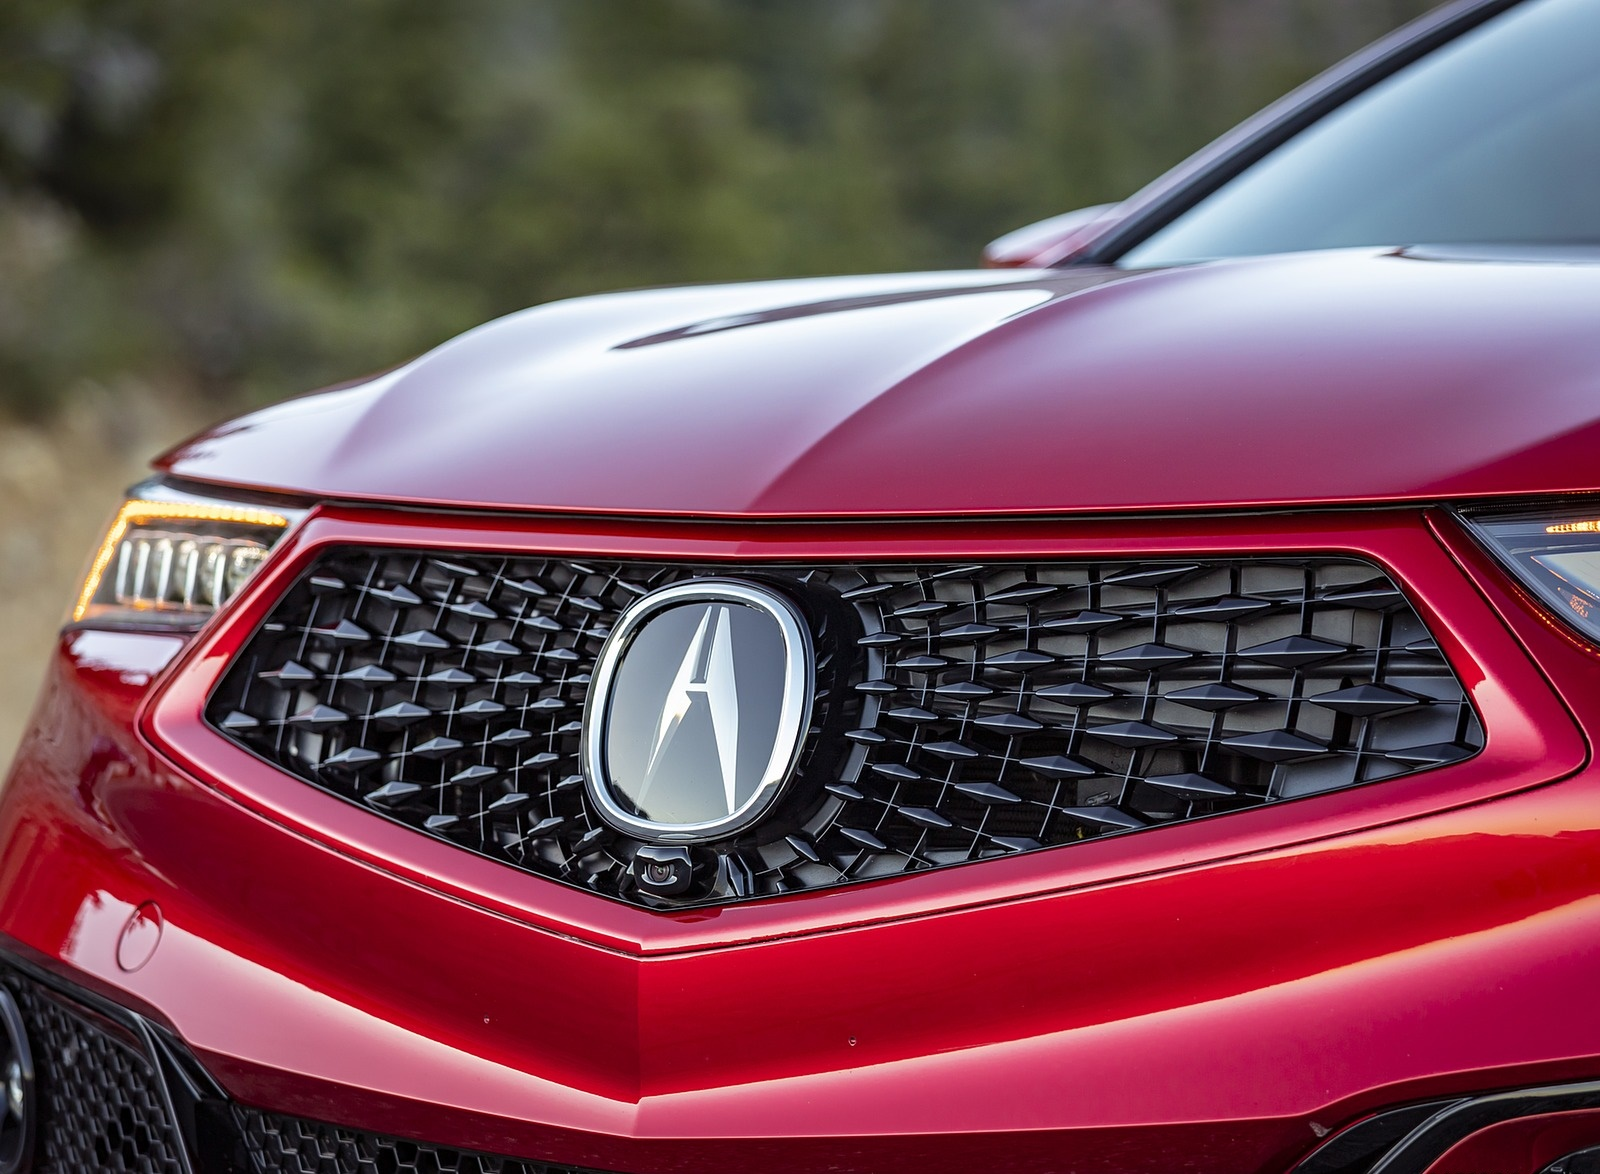 2020 Acura TLX PMC Edition Grill Wallpapers (14)